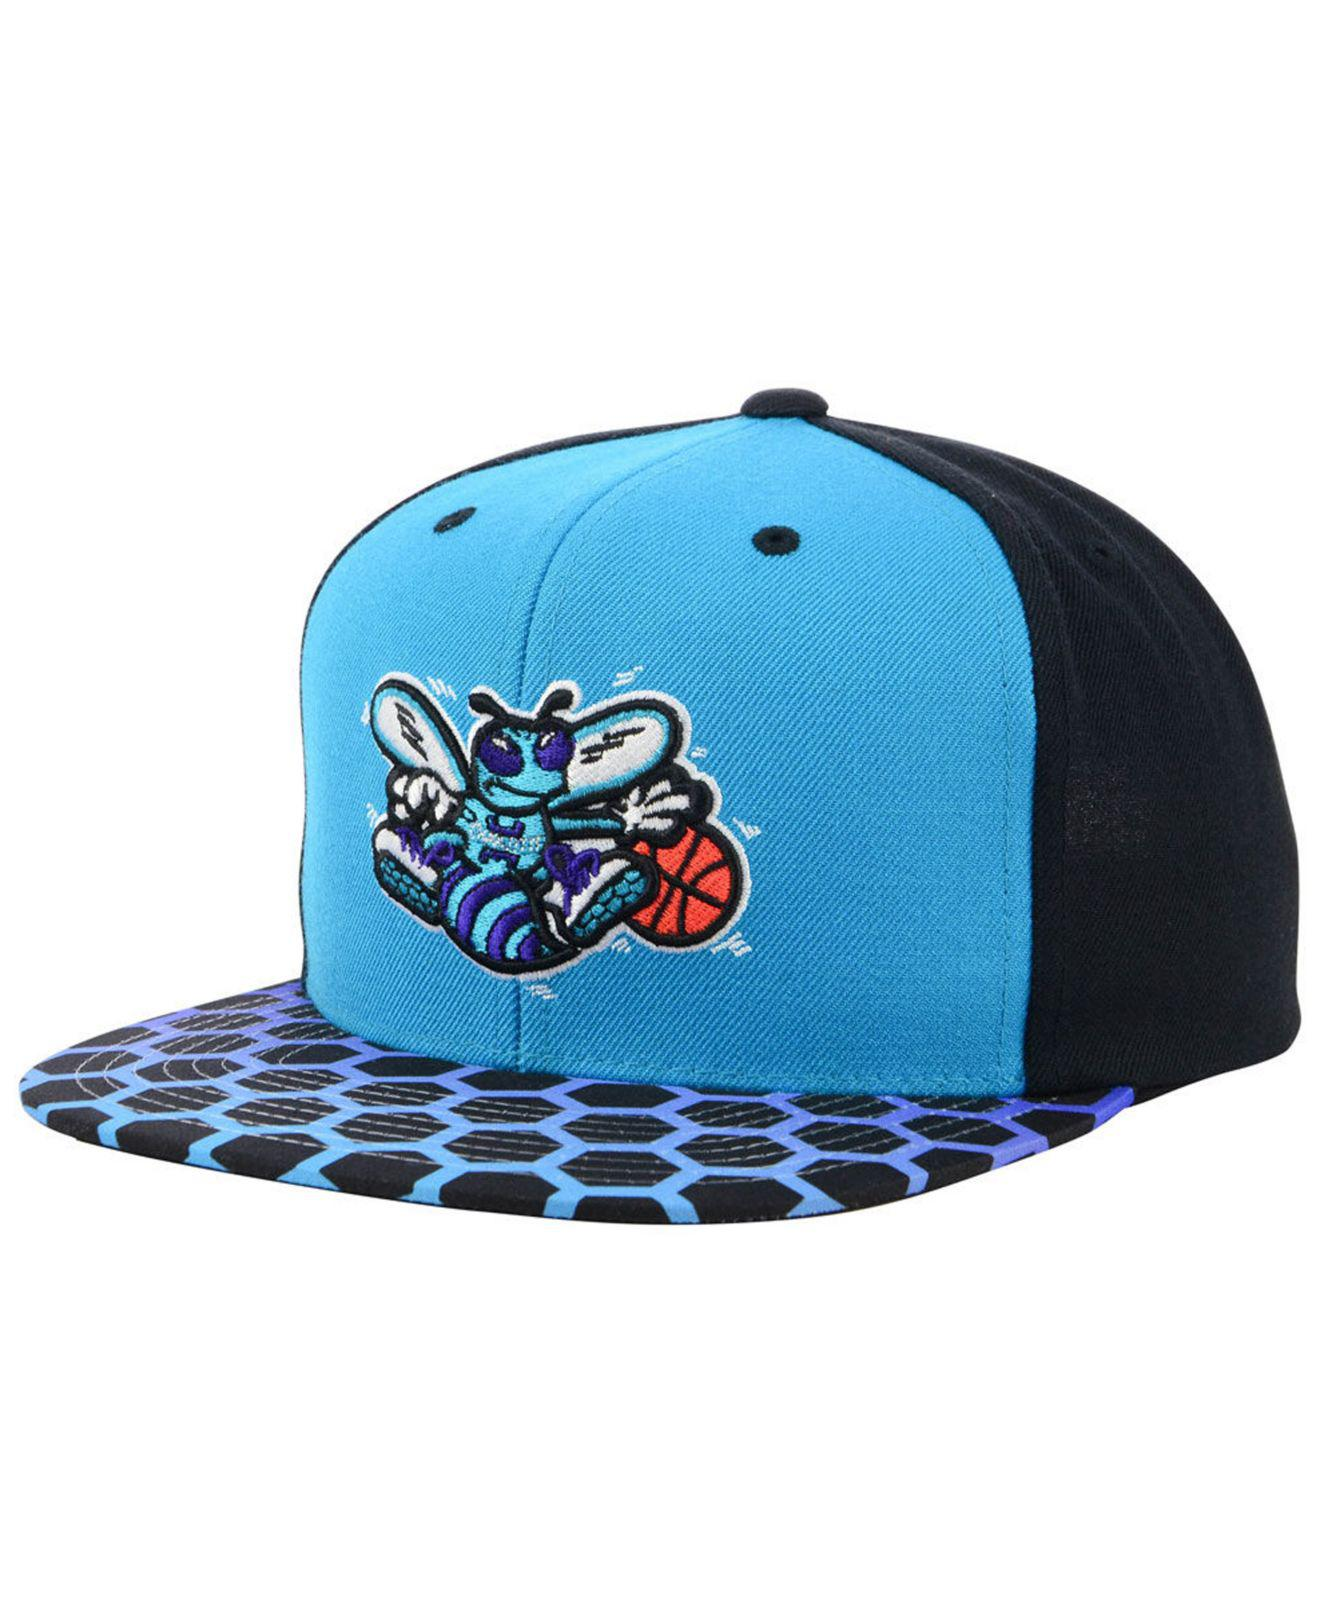 on sale 92ac8 fc81c ... solid team colour sb charlotte hornets teal click to zoom 40b54 ea17d  buy mitchell ness. mens blue charlotte hornets winning team snapback cap  5793d ...